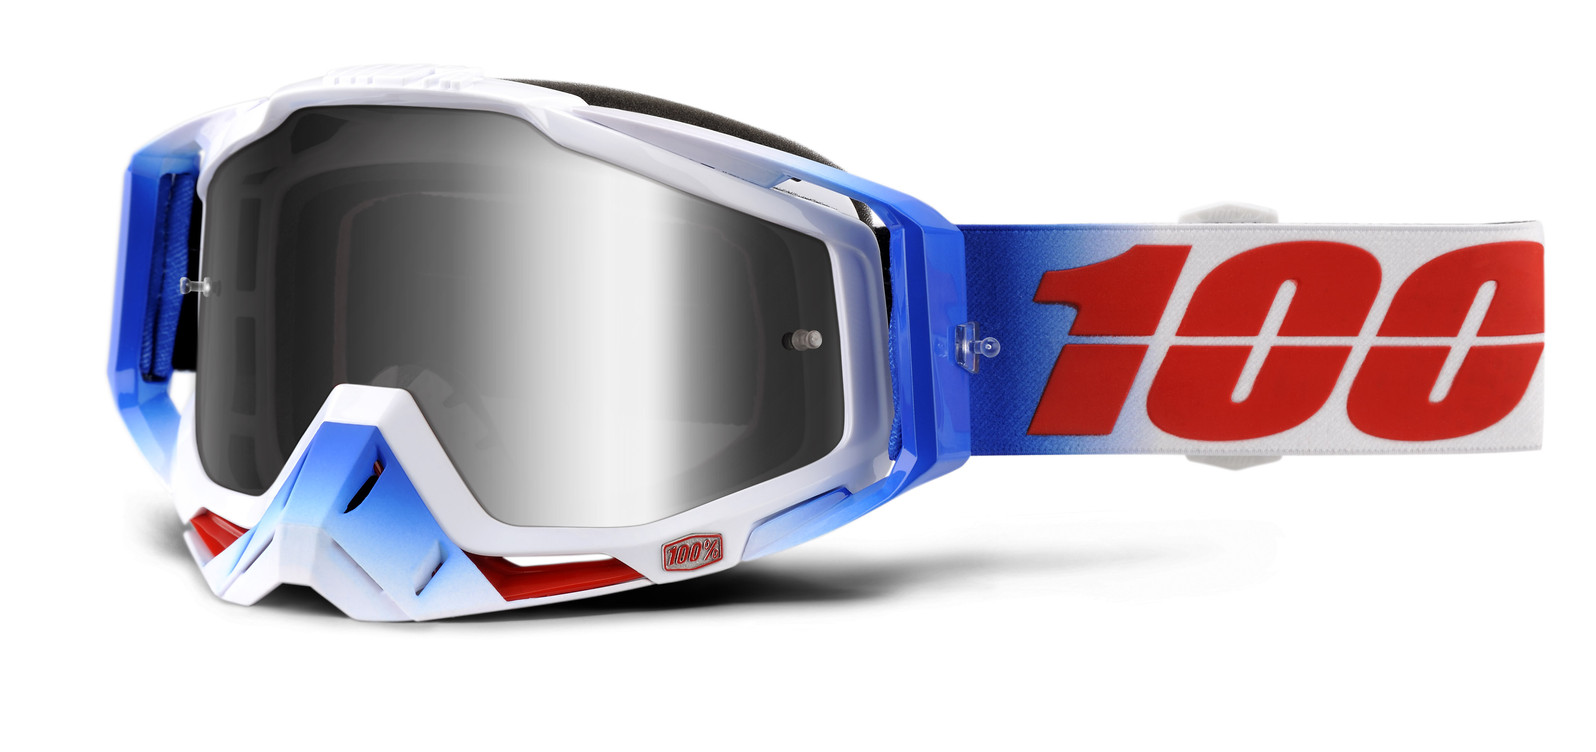 5931adf6e0 100% Racecraft Goggles - Reviews